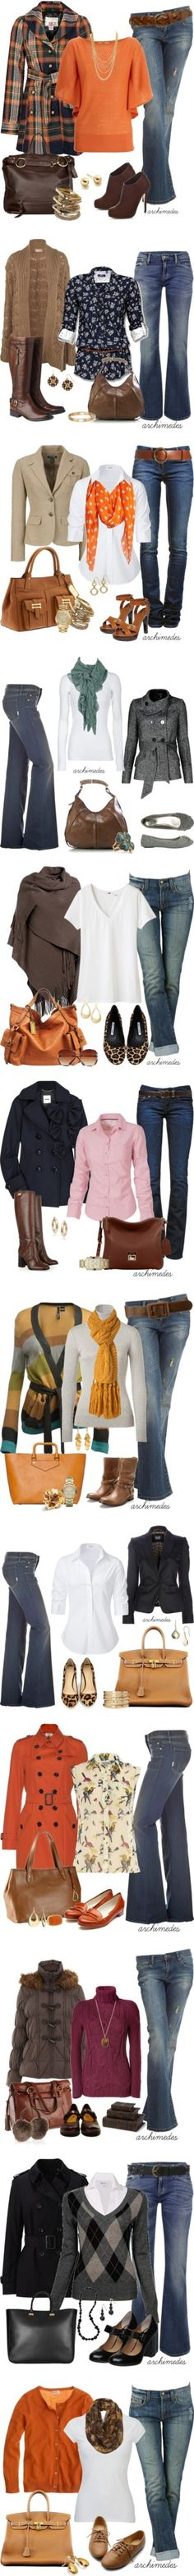 Dressed for Fall #3 and #last